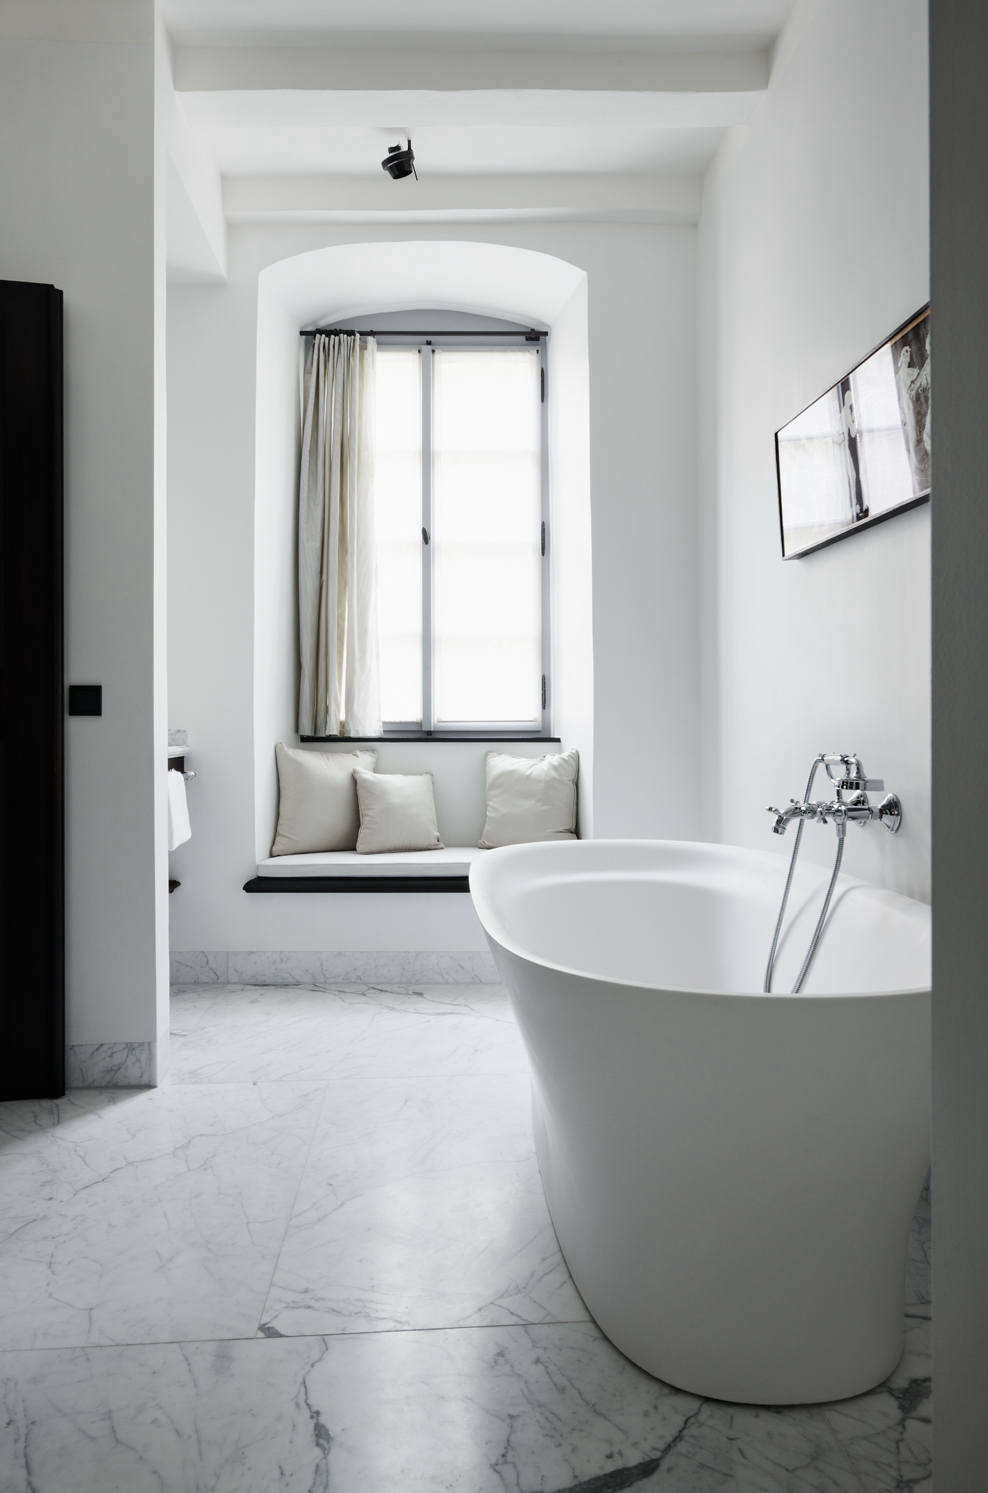 An ensuite bathroom with soaking tub and built-in window seat.